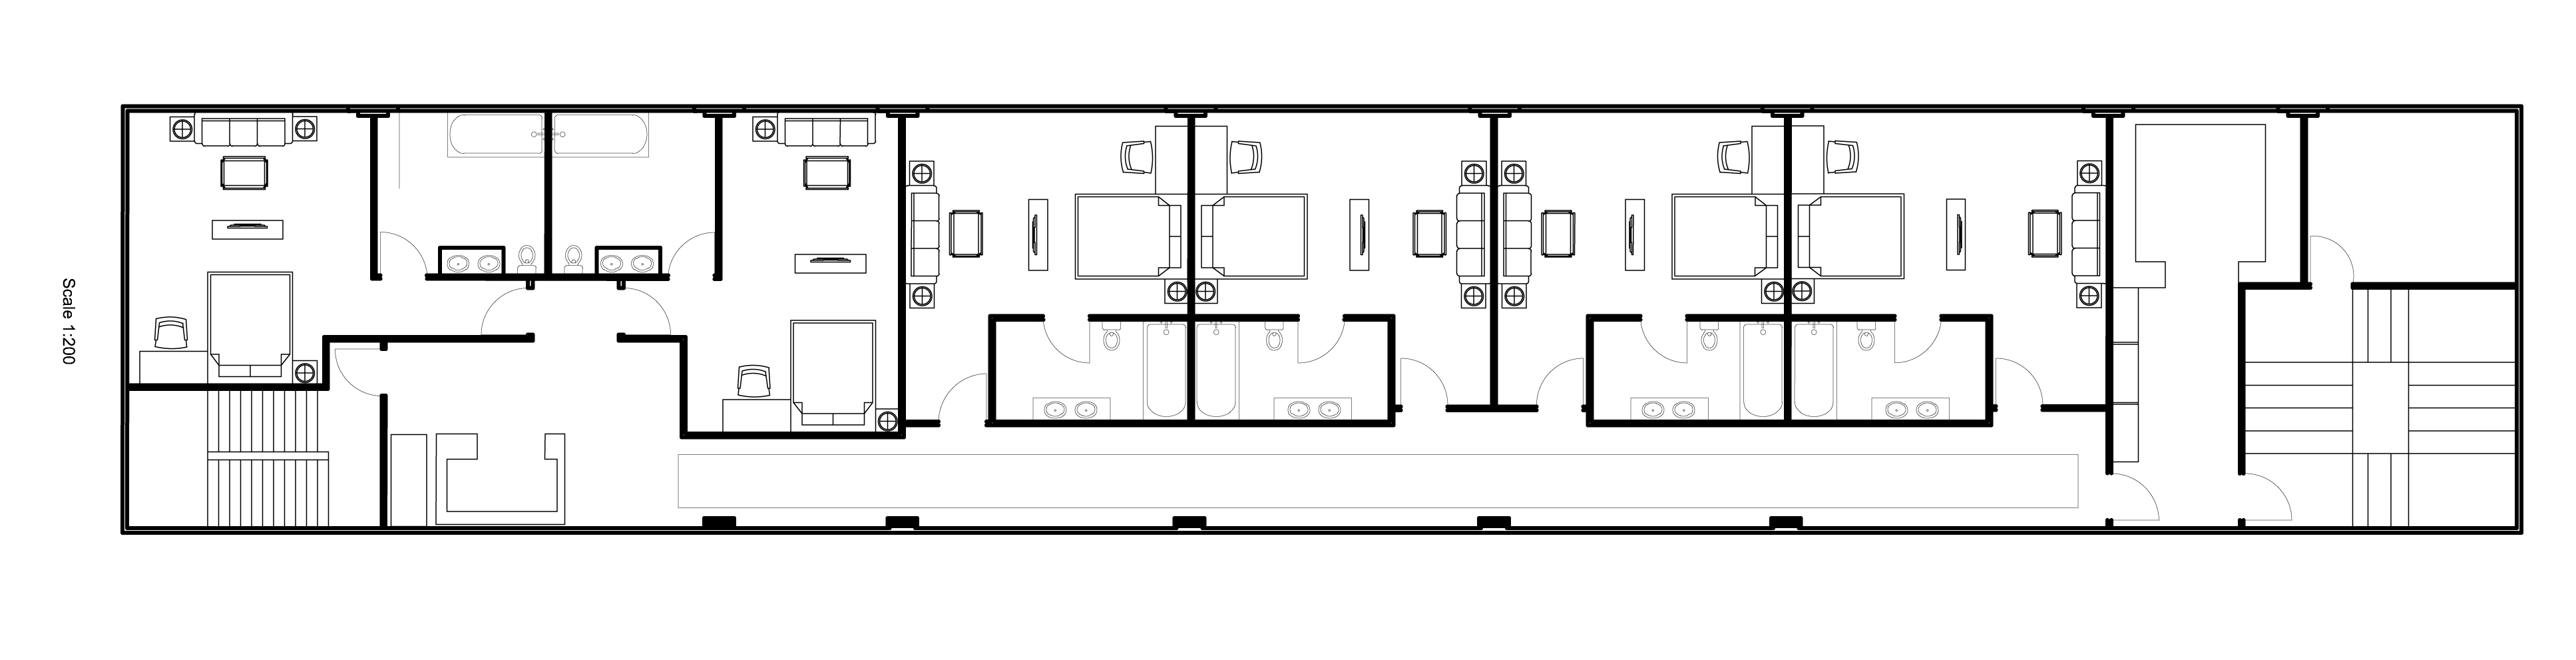 File:Floor plan of hotel rooms..jpg - Wikimedia Commons